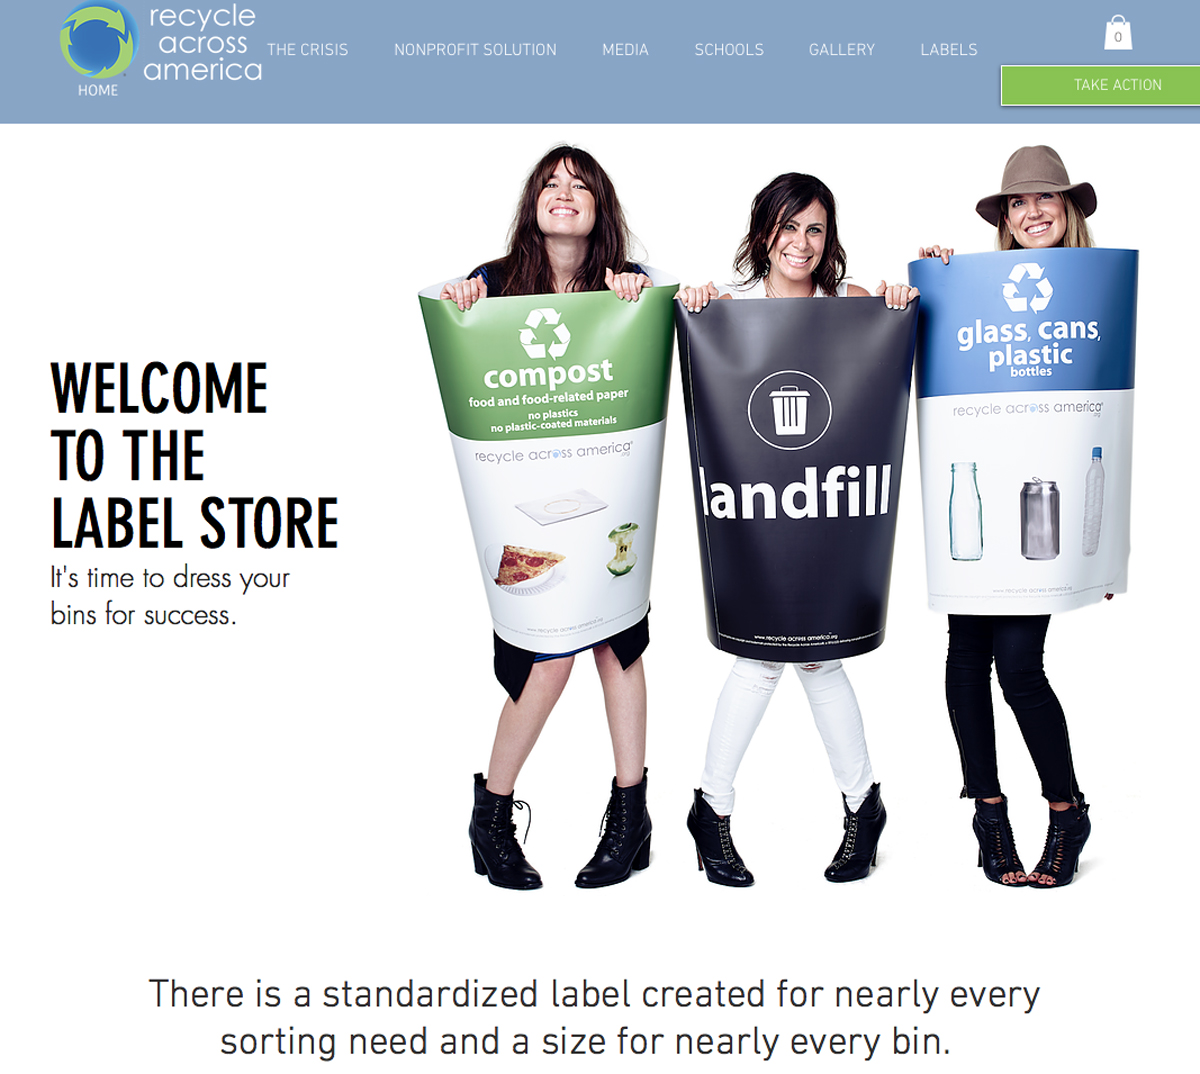 The Recycle Across America online label store (recycleacrossamerica.org) offers a wide variety of ready-made, full color recycling bin labels for use in offices, schools, and other public places. Placing the right signage on recycling bins is one way to encourage others to recycle too.